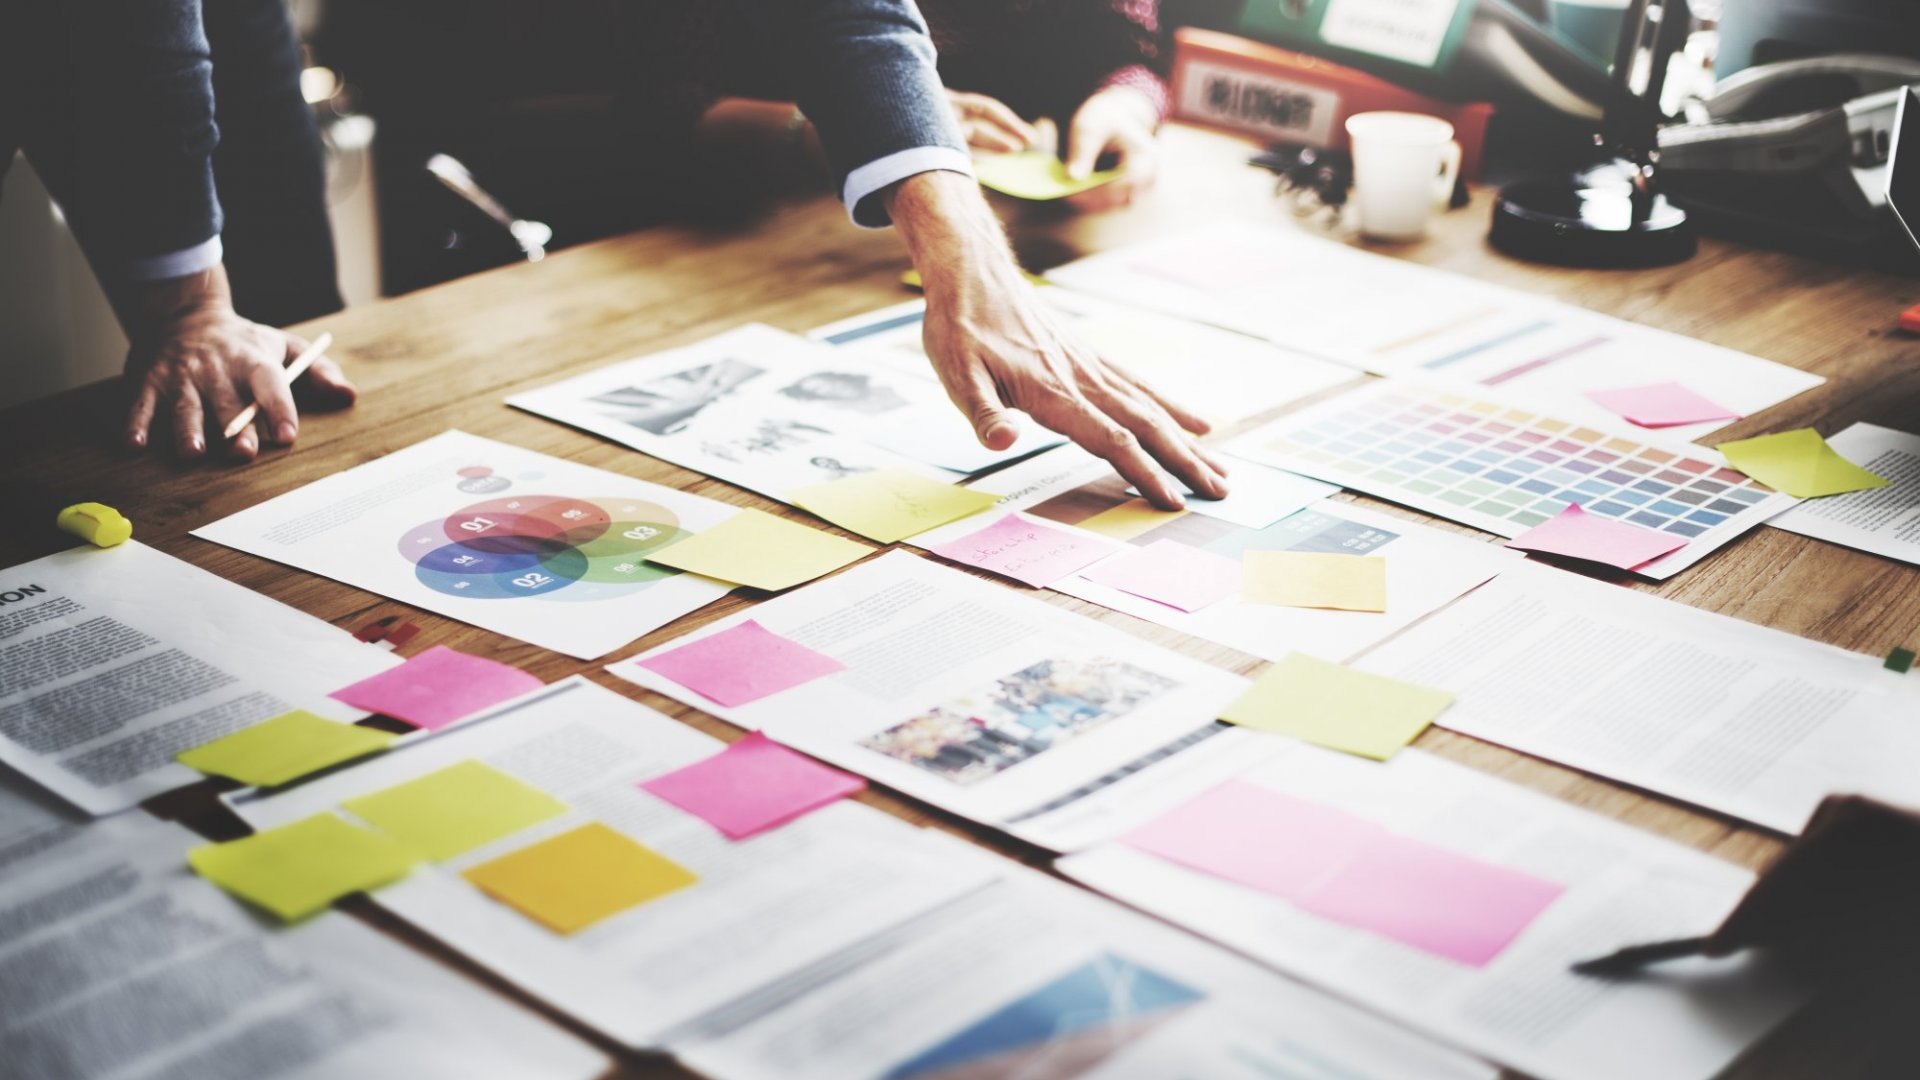 4 Ways to Make Your Brainstorming Sessions More Effective